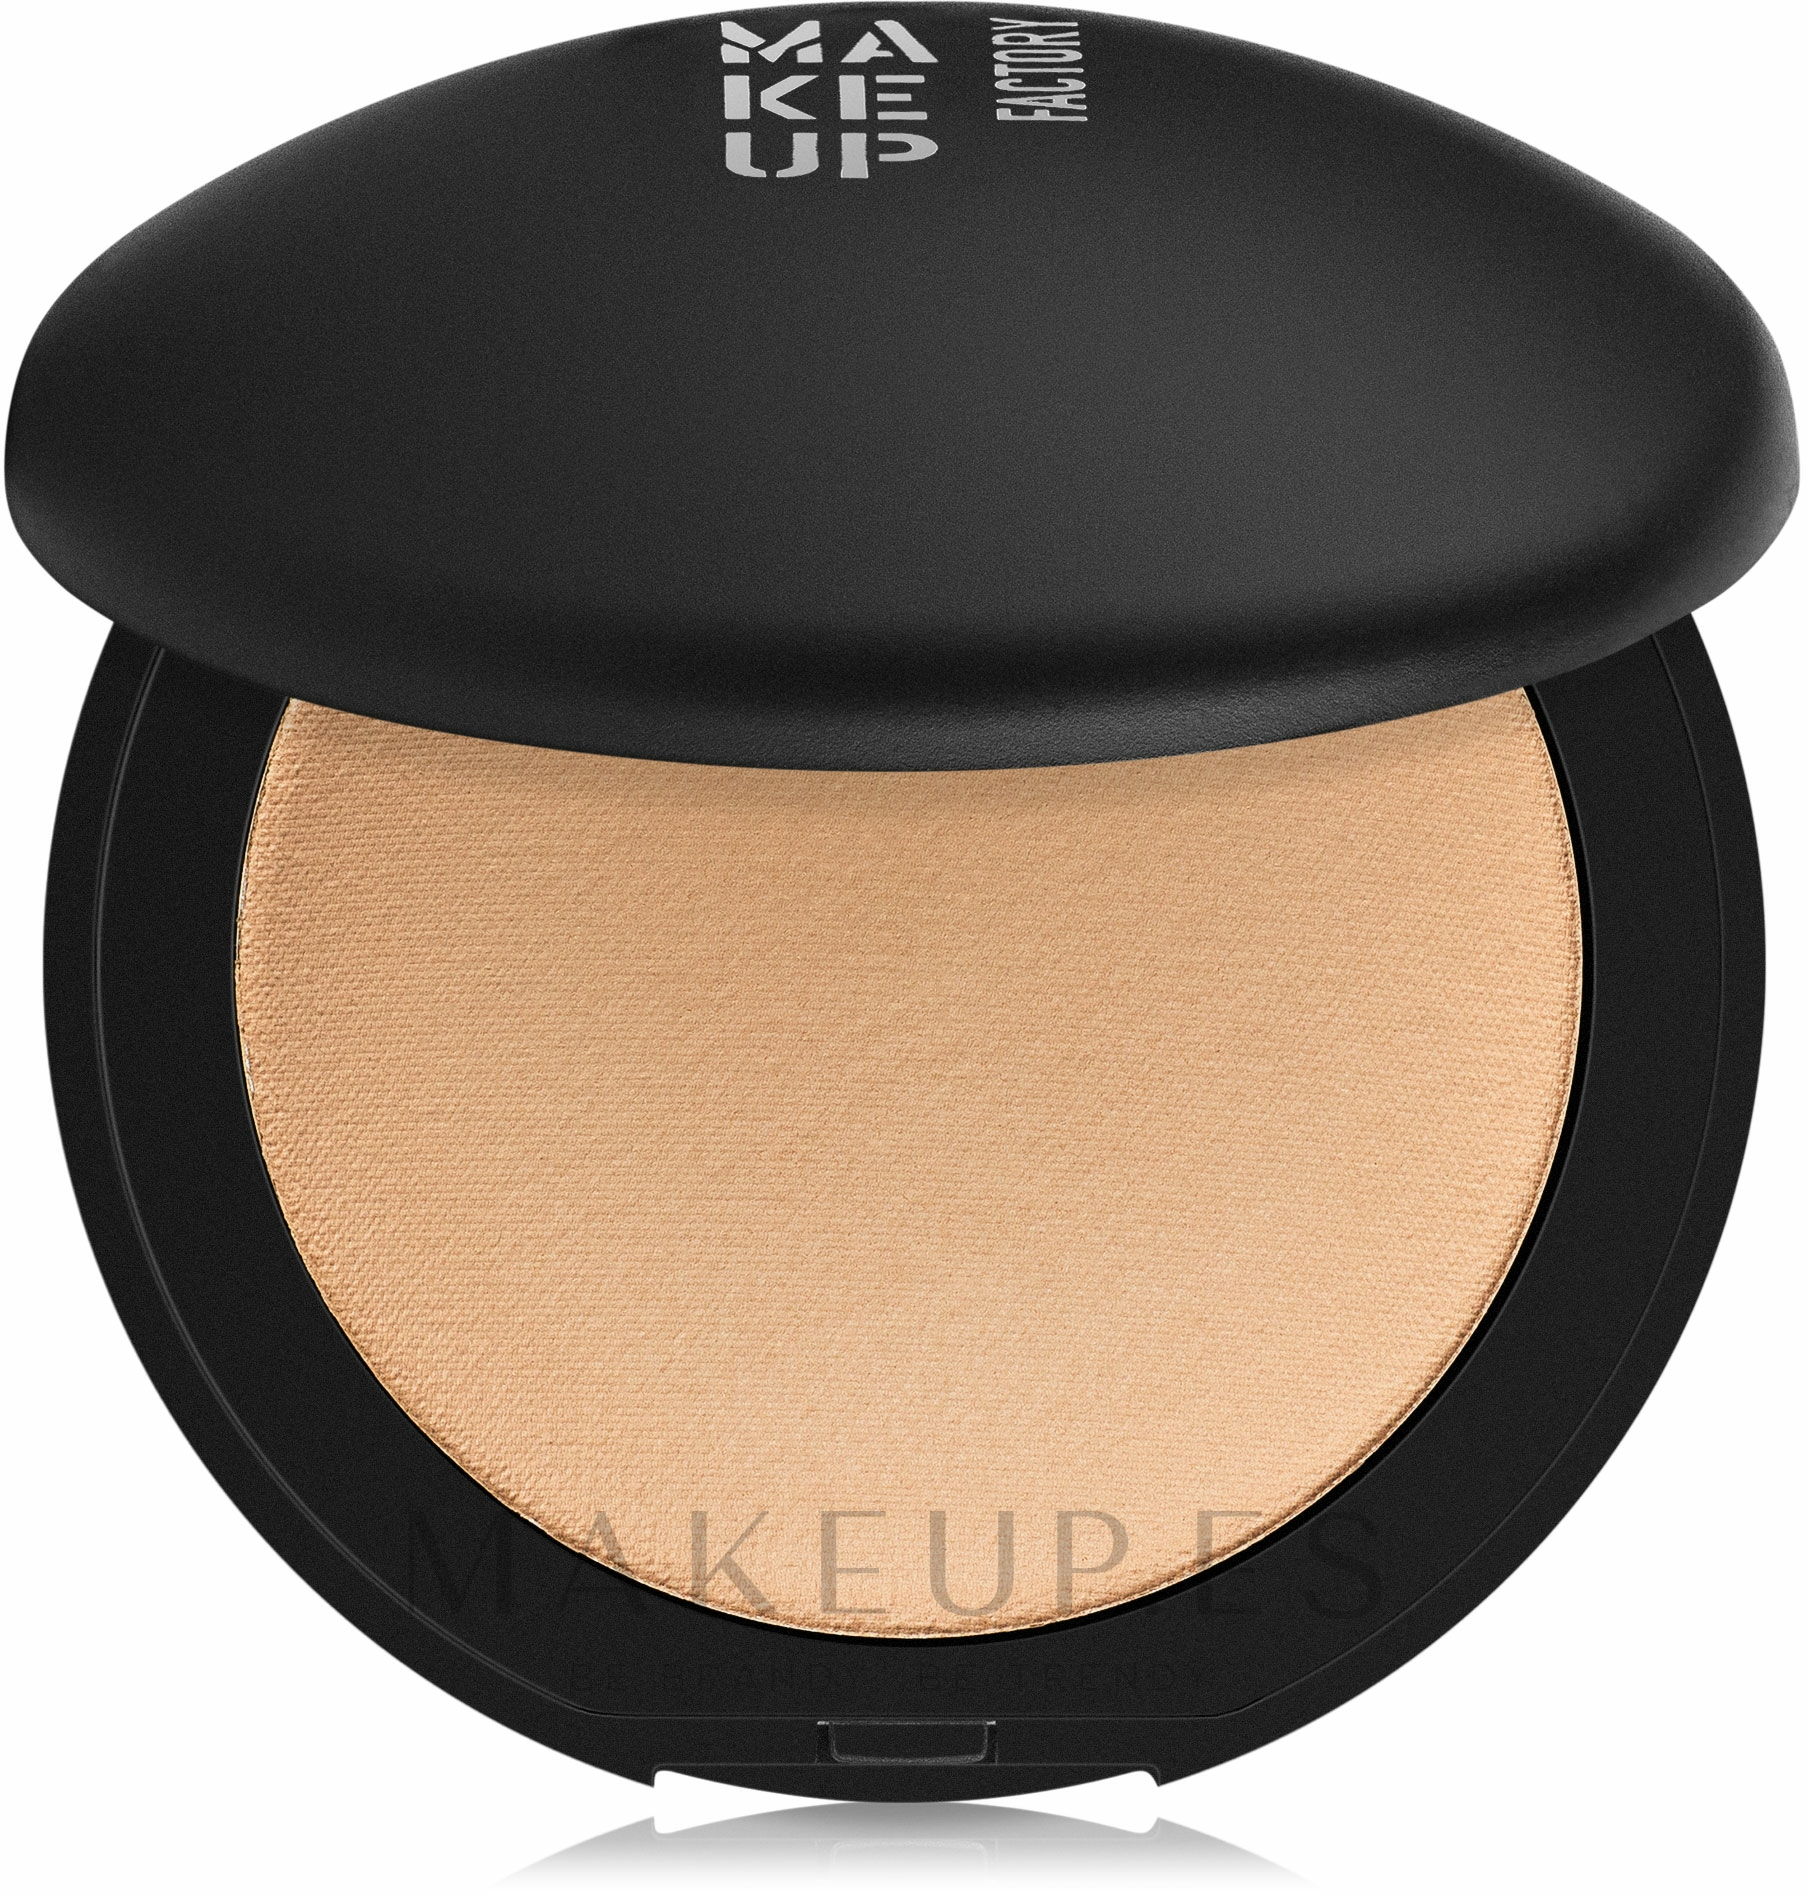 Polvo facial mineral compacto - Make Up Factory Mineral Compact Powder — imagen 06 - Sand